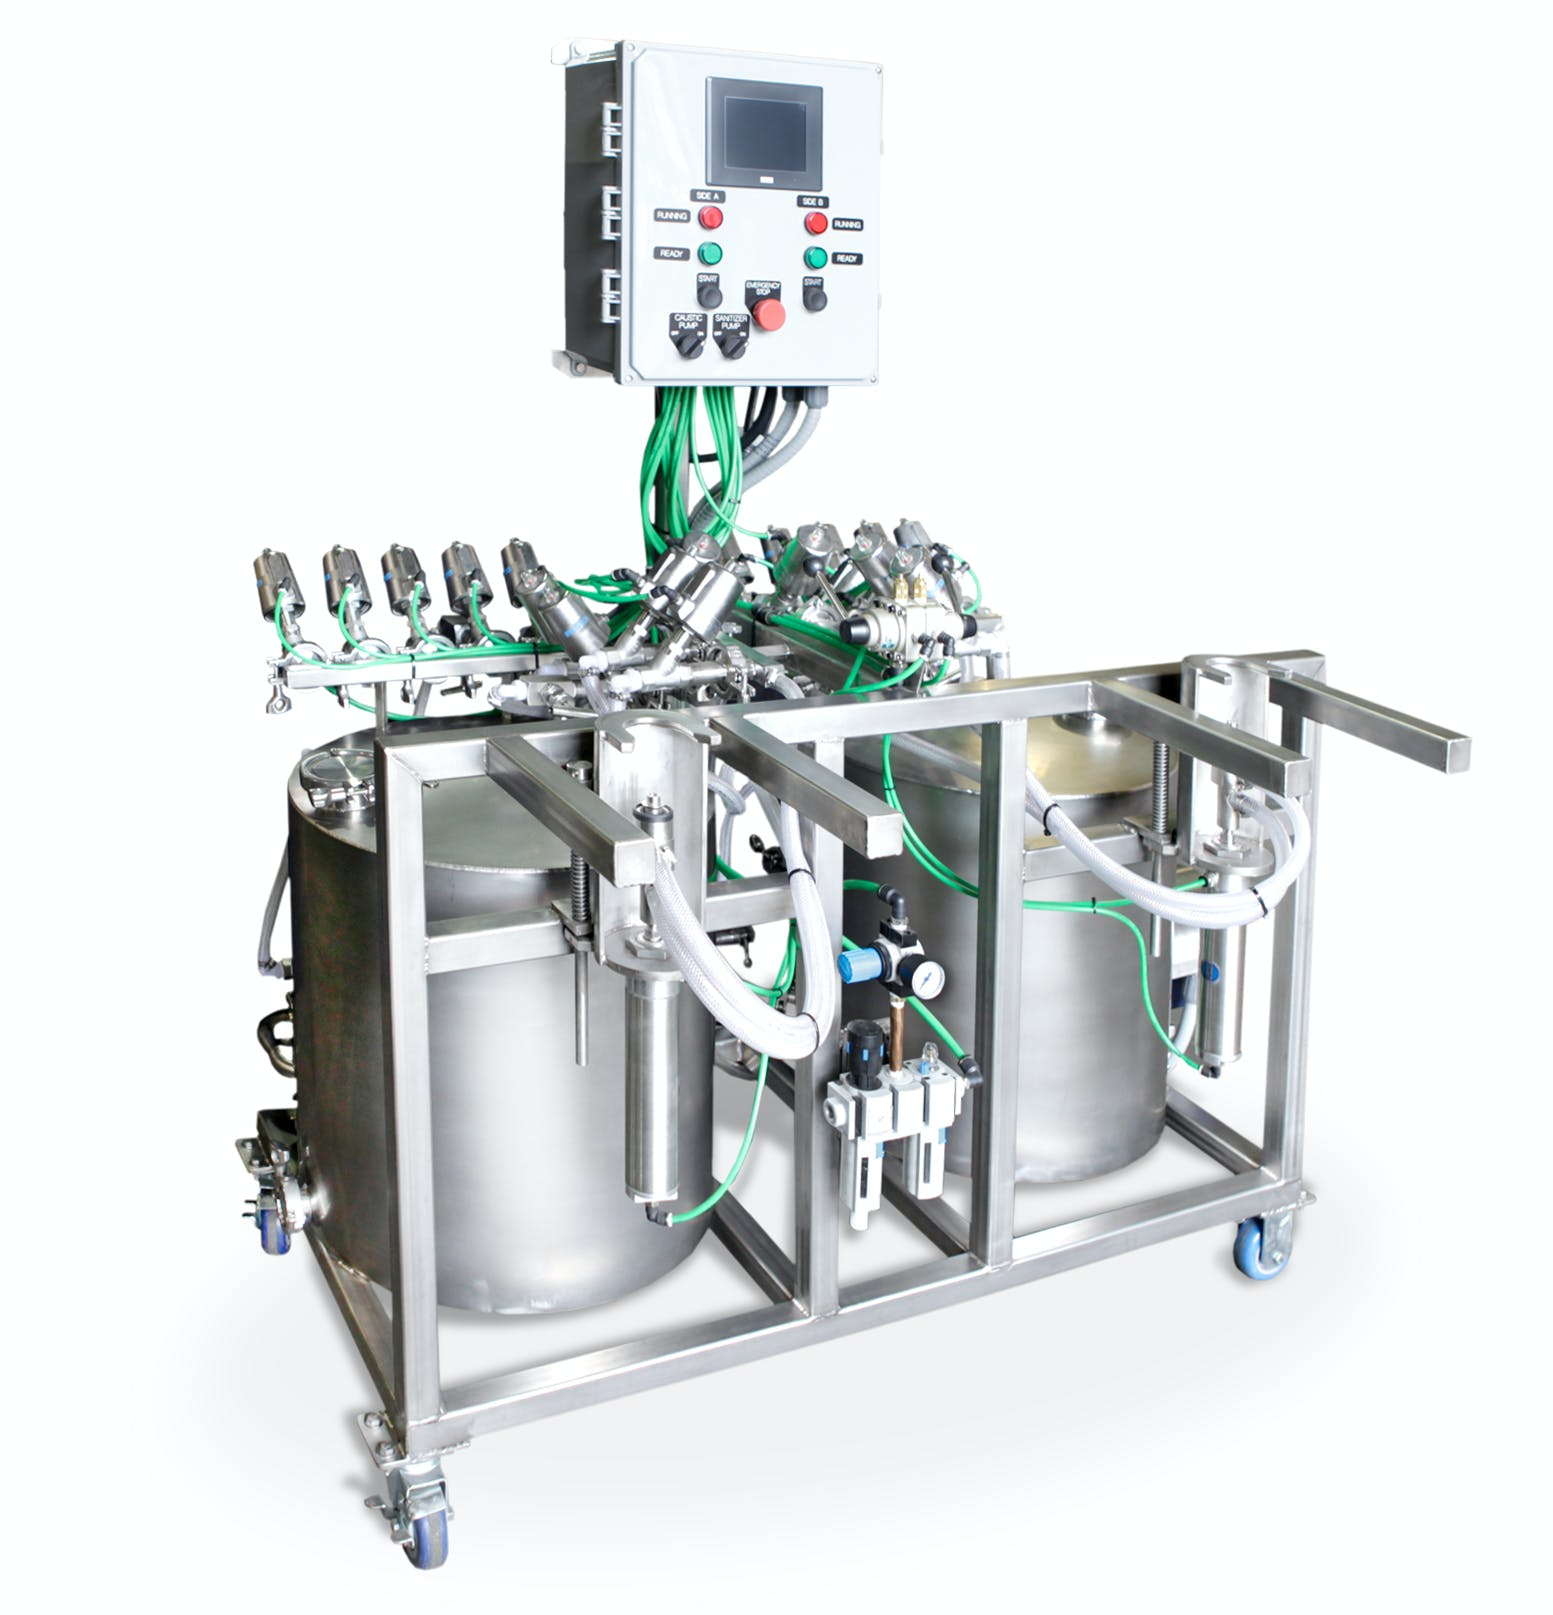 GSS Semi-Automatic Keg Washer — Dual Head Keg washer sold by Global Stainless Systems Inc.